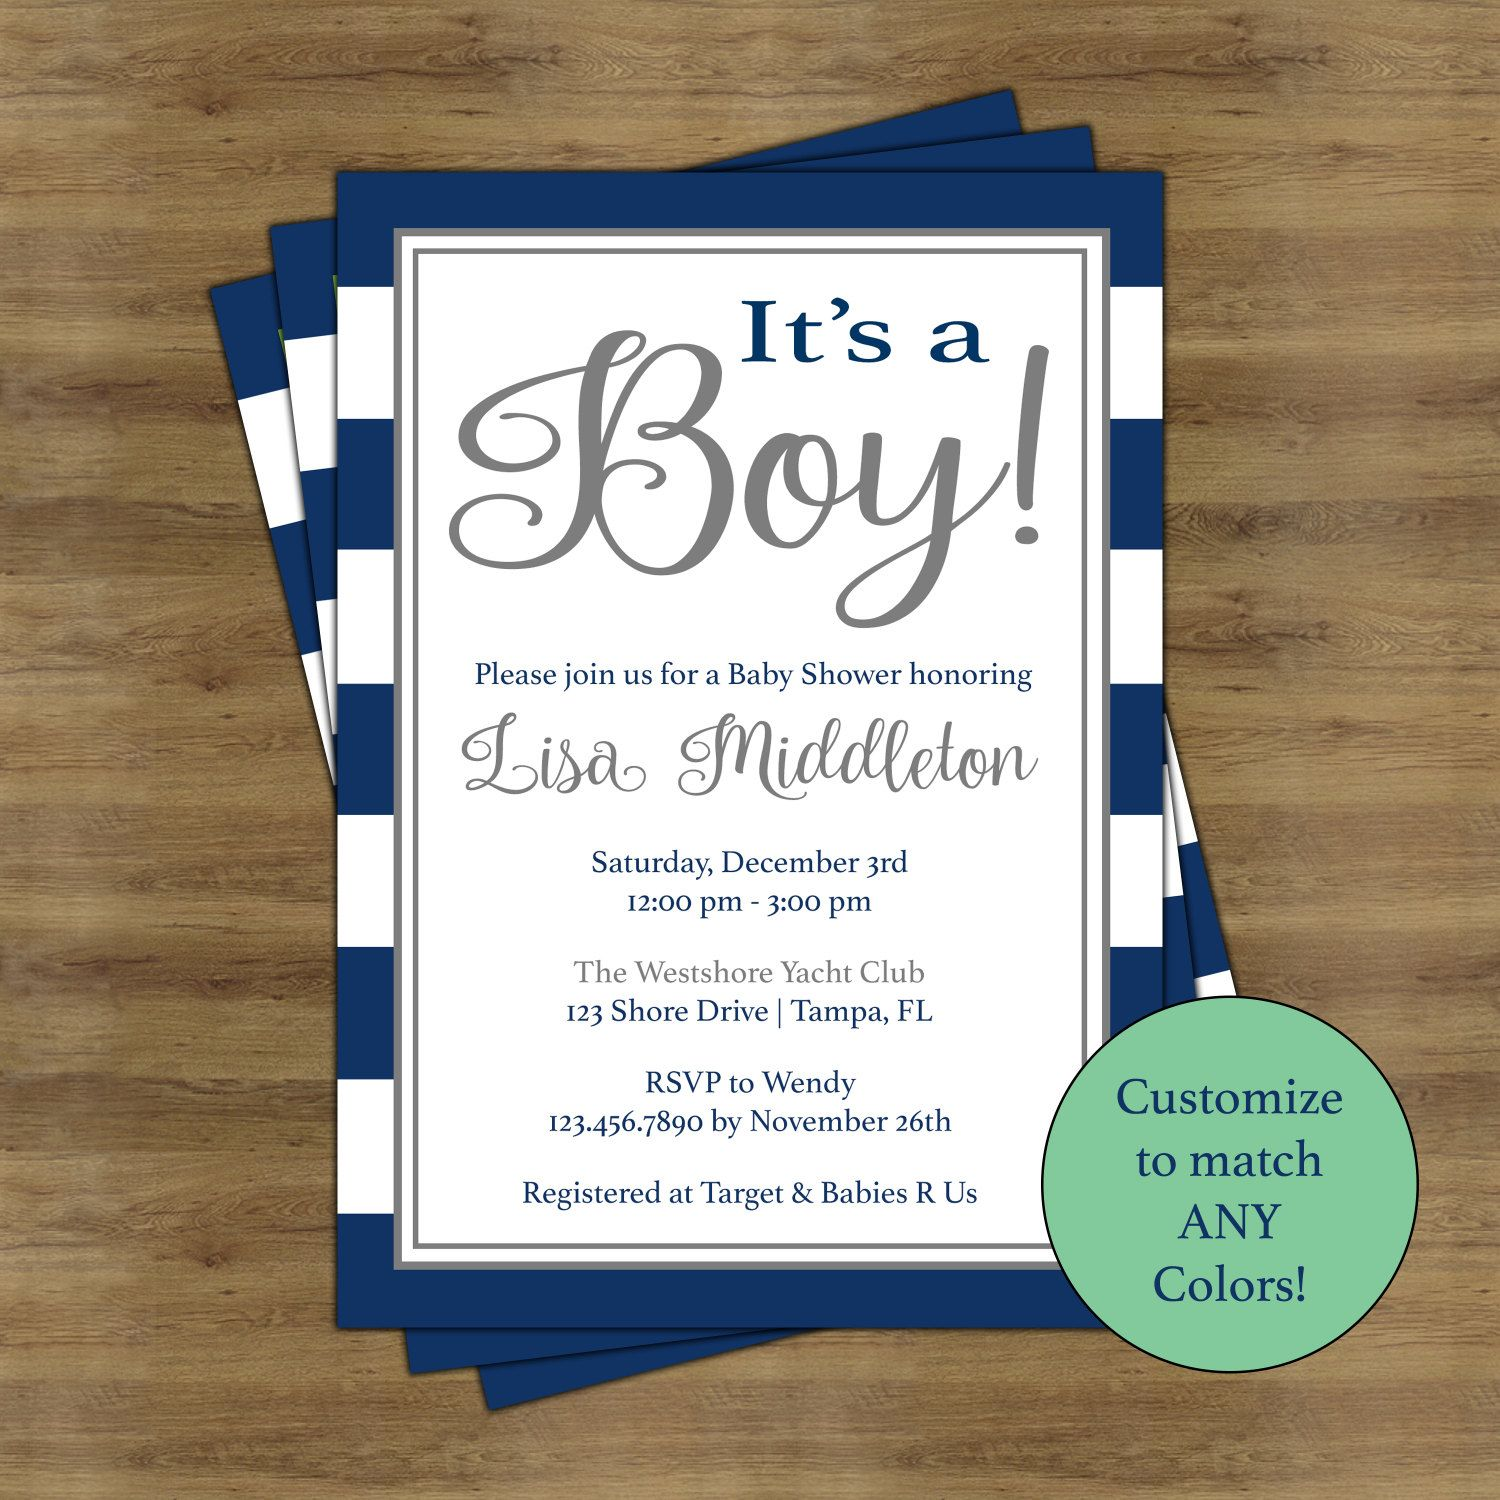 Its A Boy Baby Shower Invitations For Boys; Simple Baby Shower Invitation  Printable; Navy Baby Shower Invites Boy; Blue Baby Shower By  SophisticatedSwan On ...